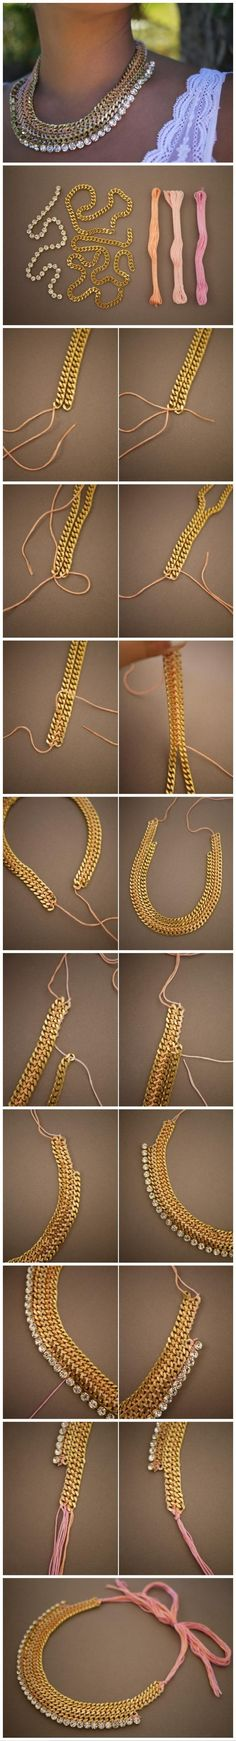 #necklace #DIY #doityourself #handmade #crafts #stepbystep #howto #budget #projects #practical #guide #jewelry